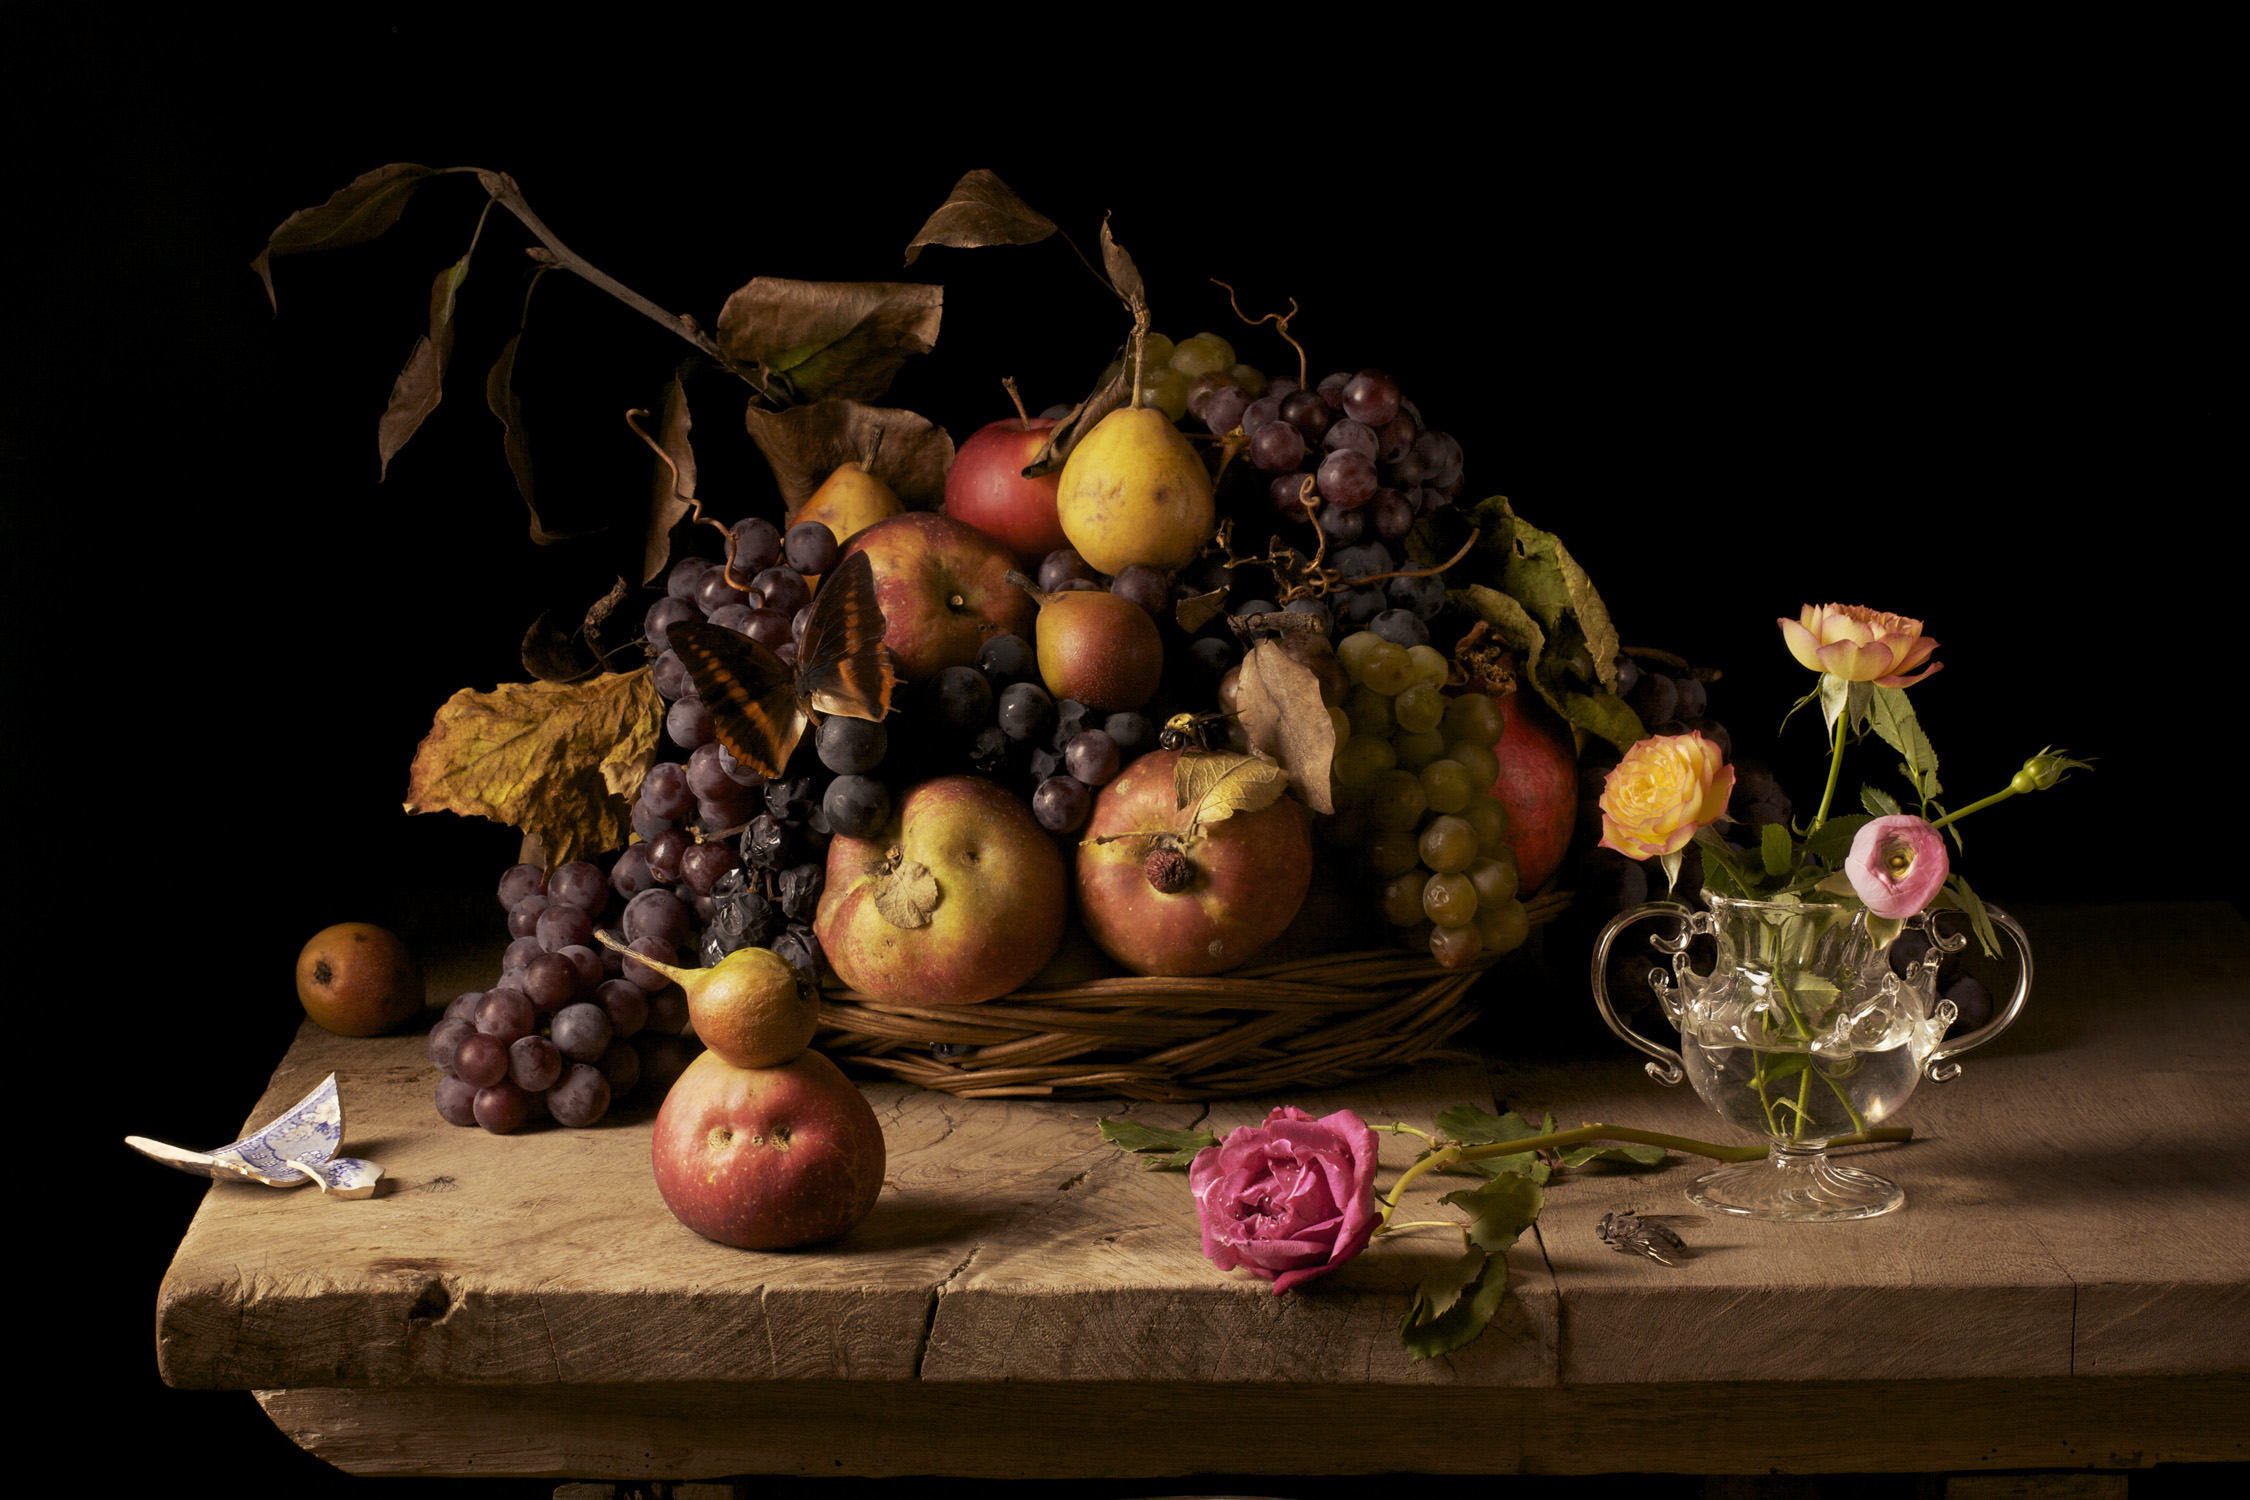 Fruit and Roses, After I.S., 2010